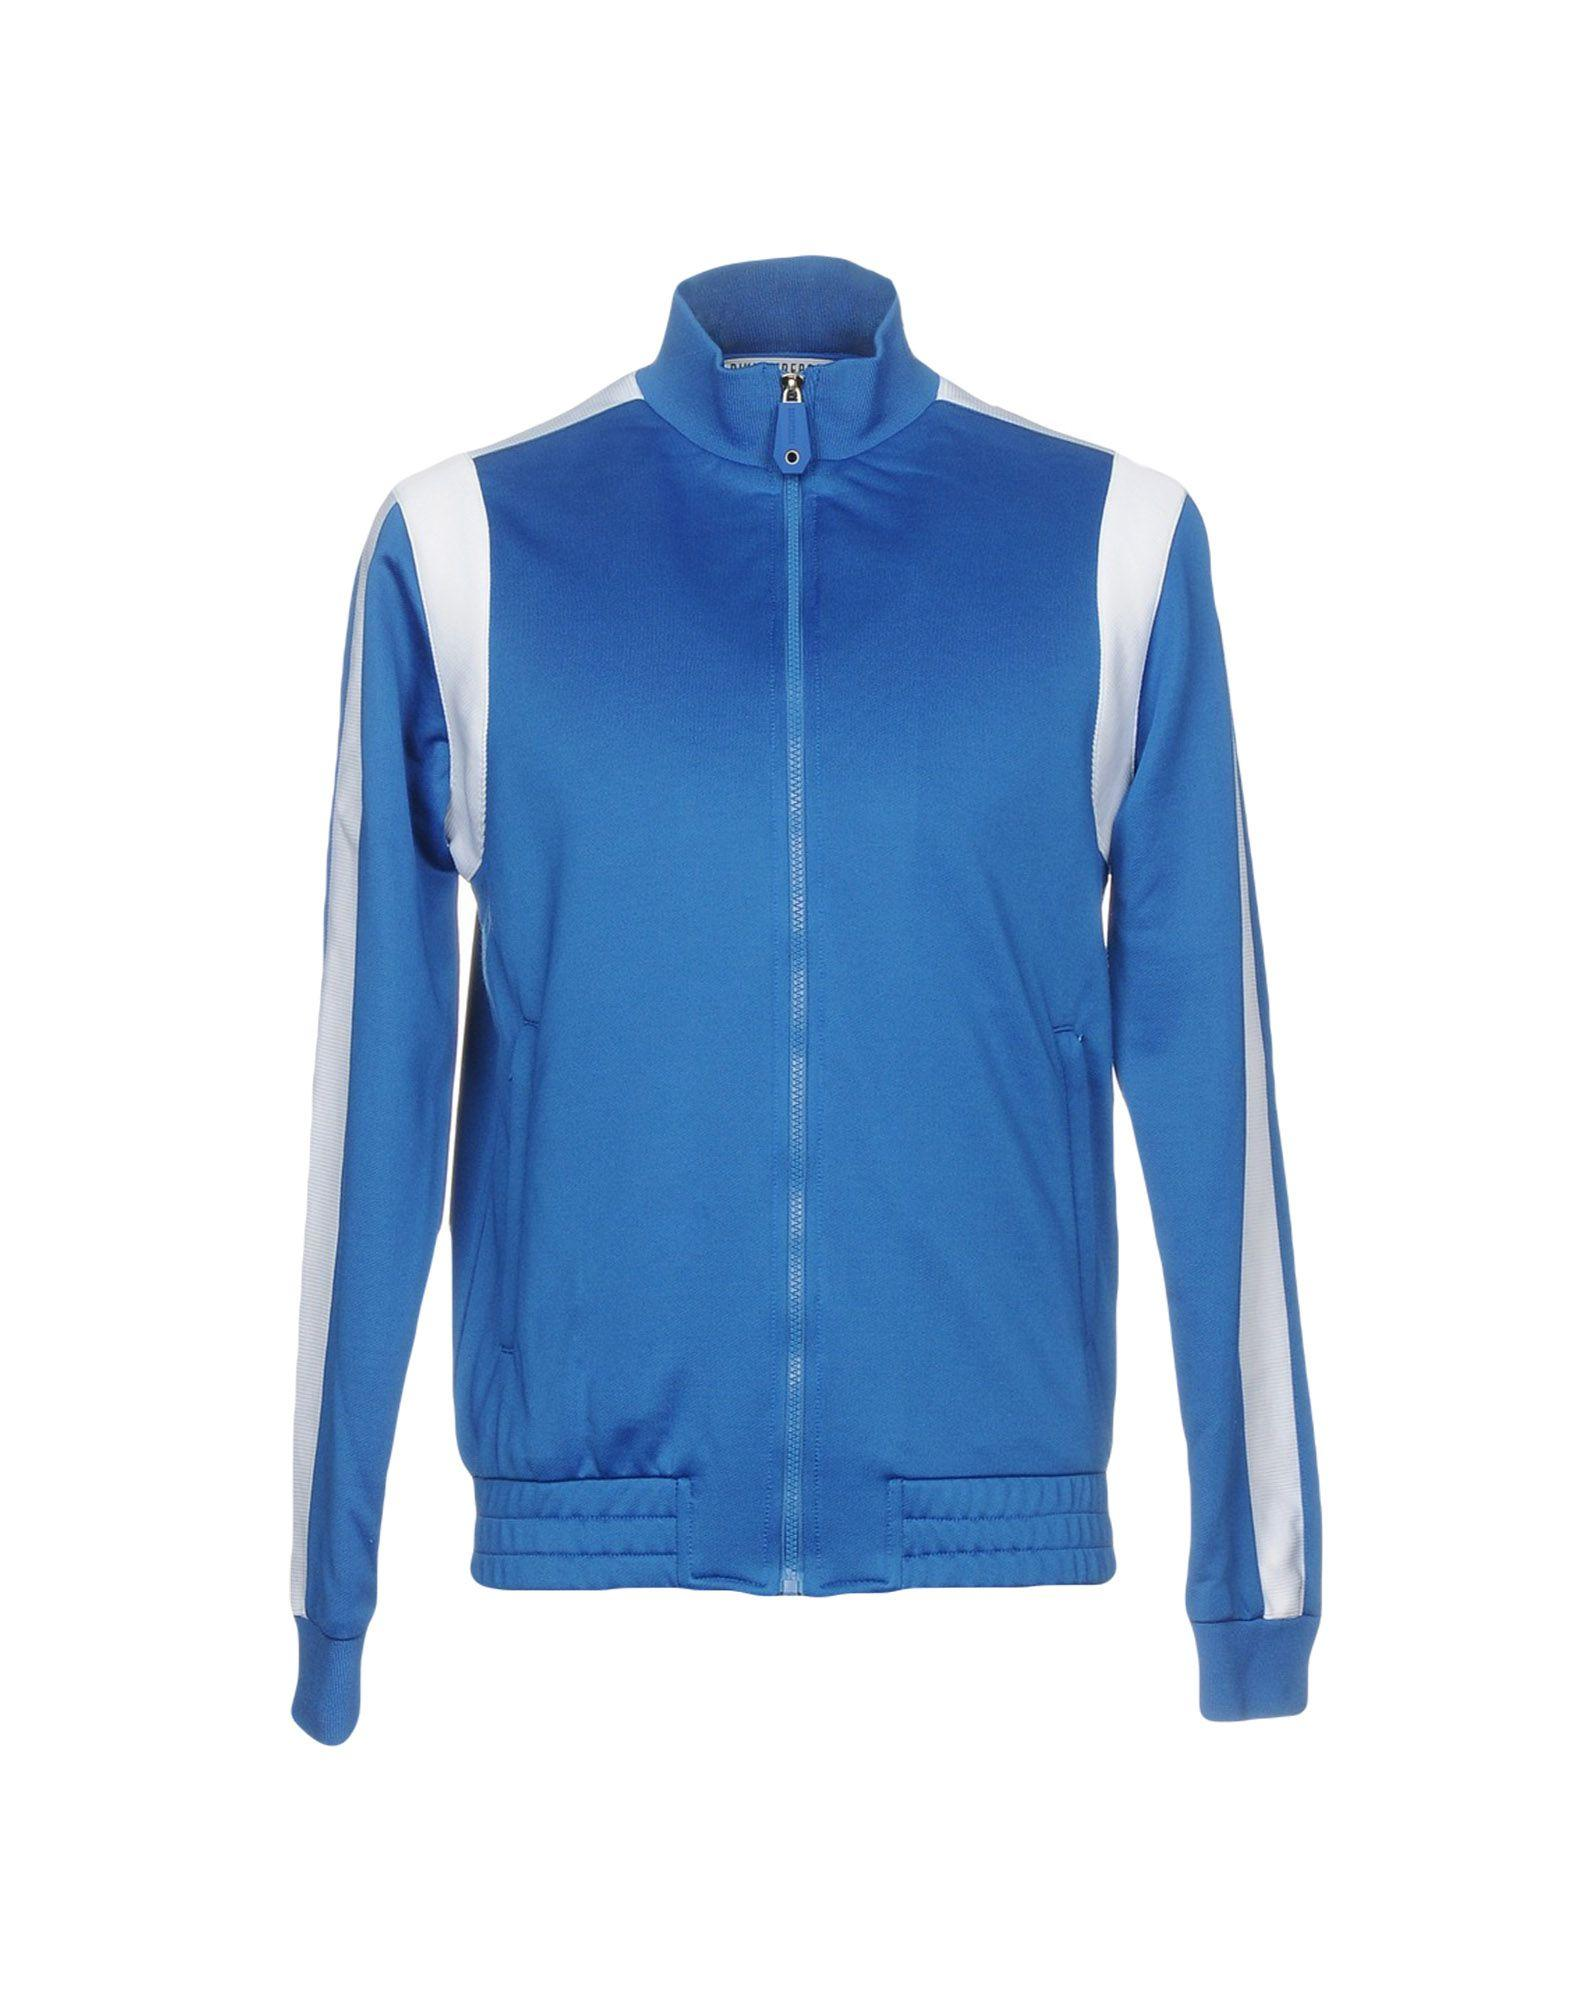 Bikkembergs Sweatshirts In Blue